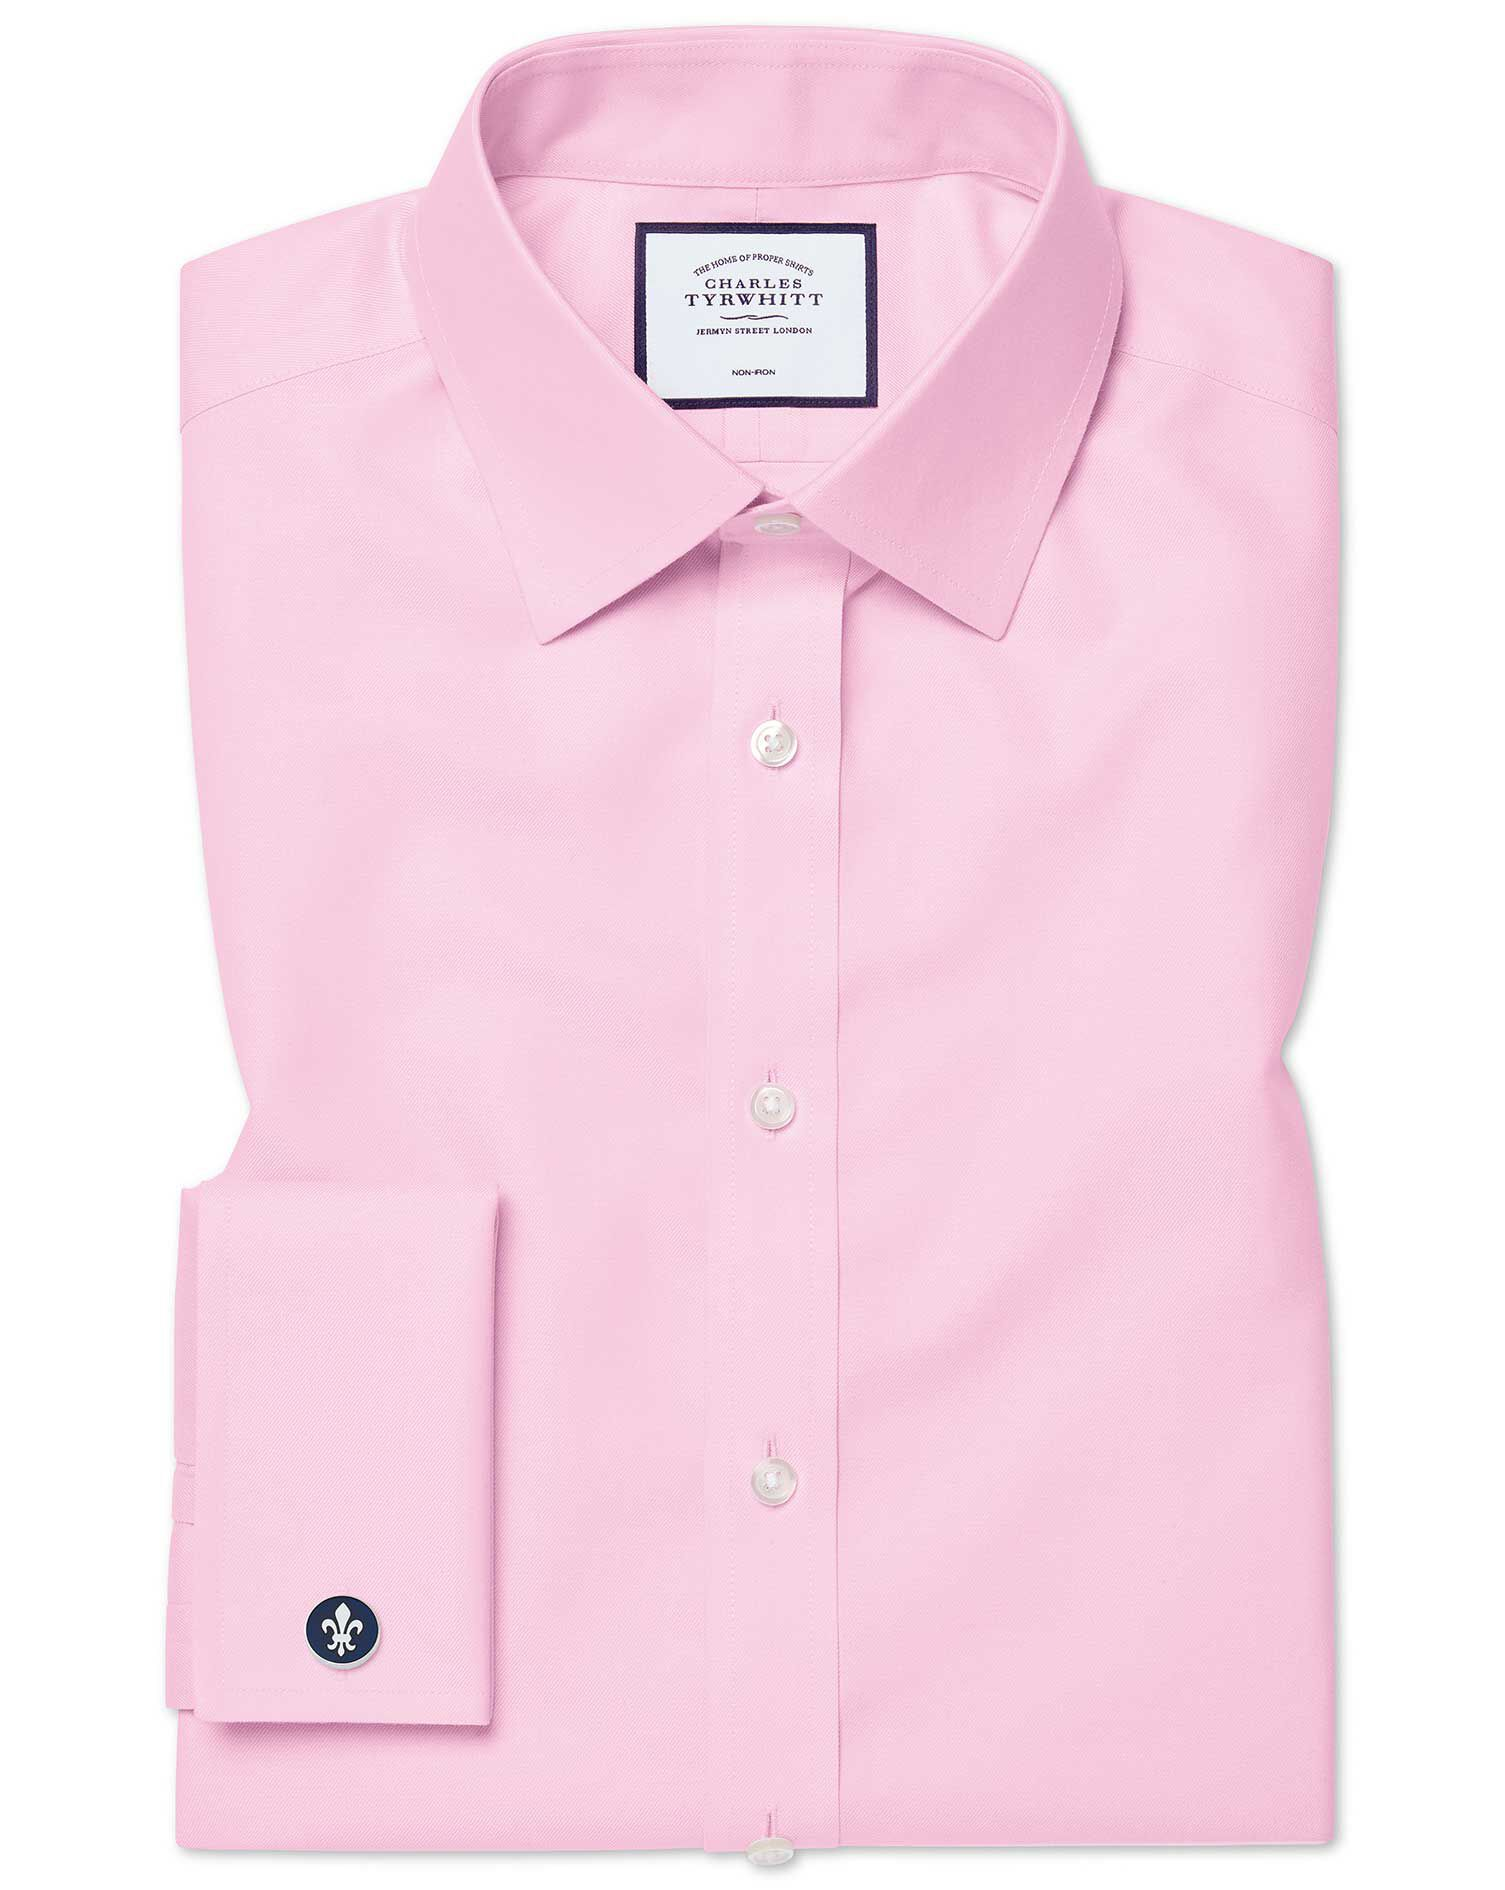 Classic Fit Non-Iron Twill Pink Cotton Formal Shirt Double Cuff Size 15.5/34 by Charles Tyrwhitt